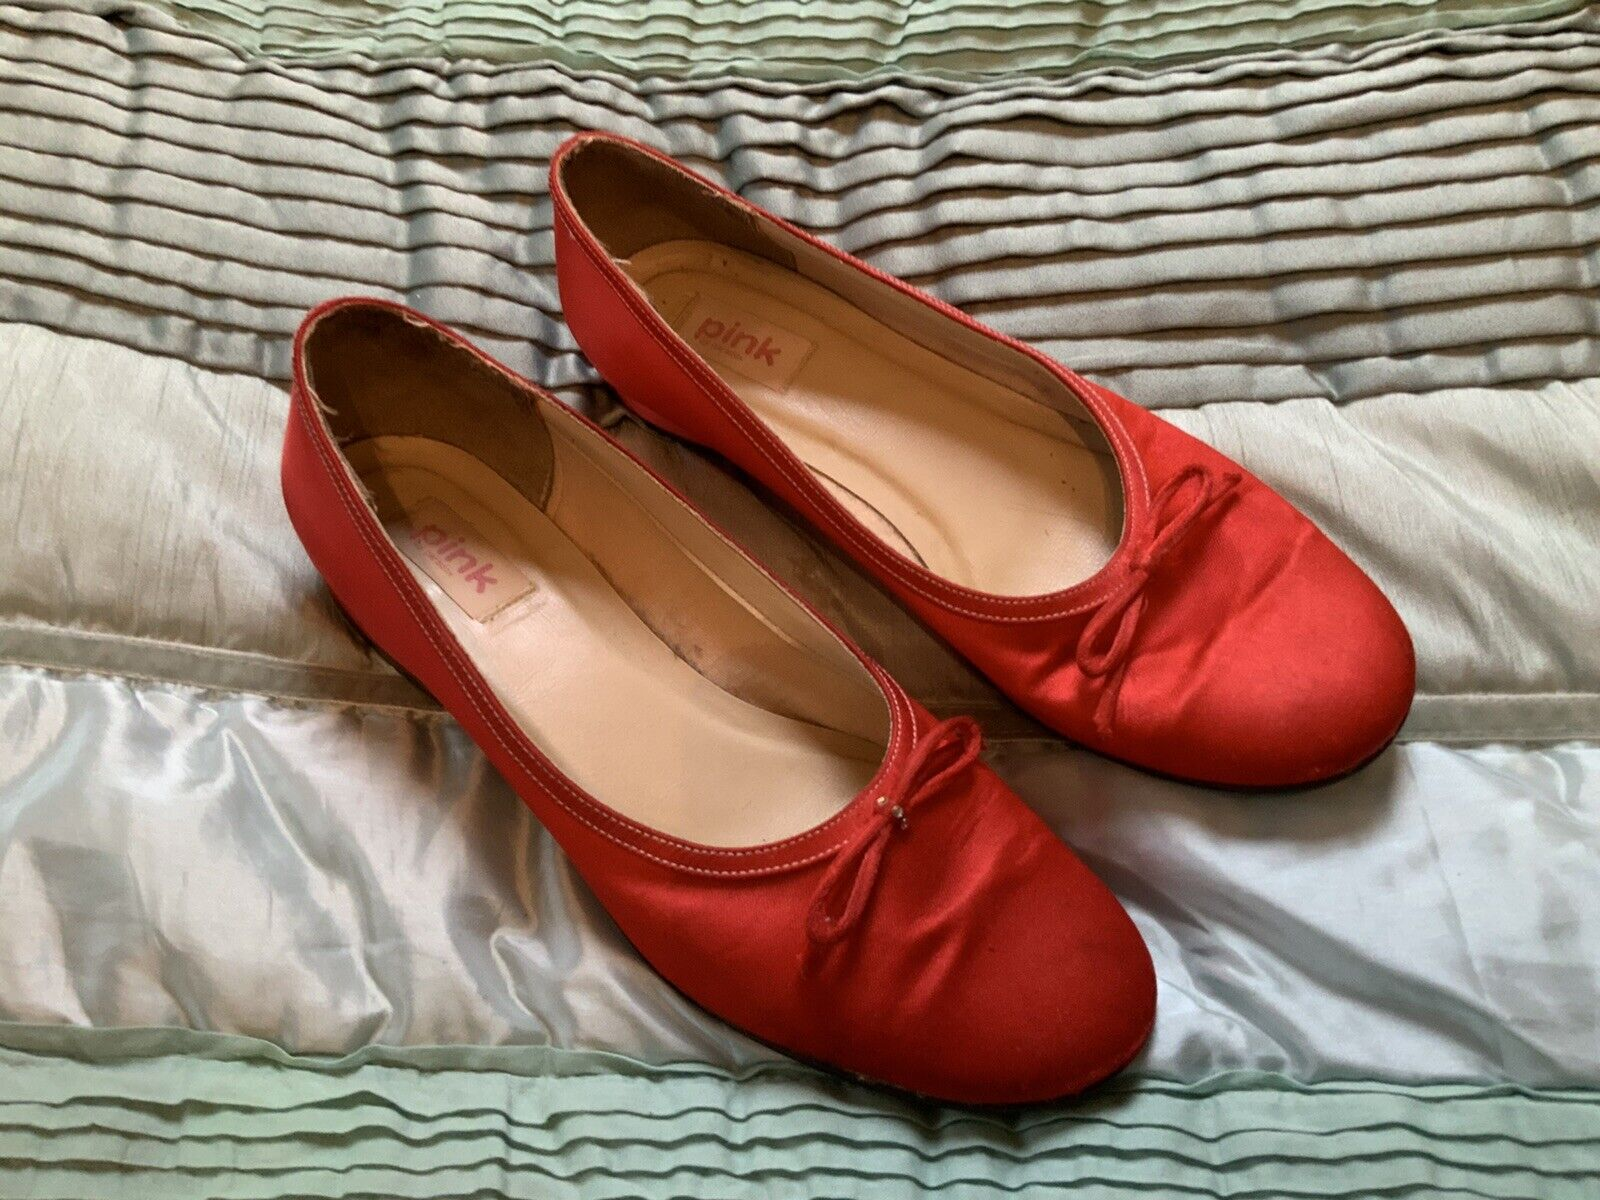 Red Satin Pink By Paradox Shoes - Sixe 41